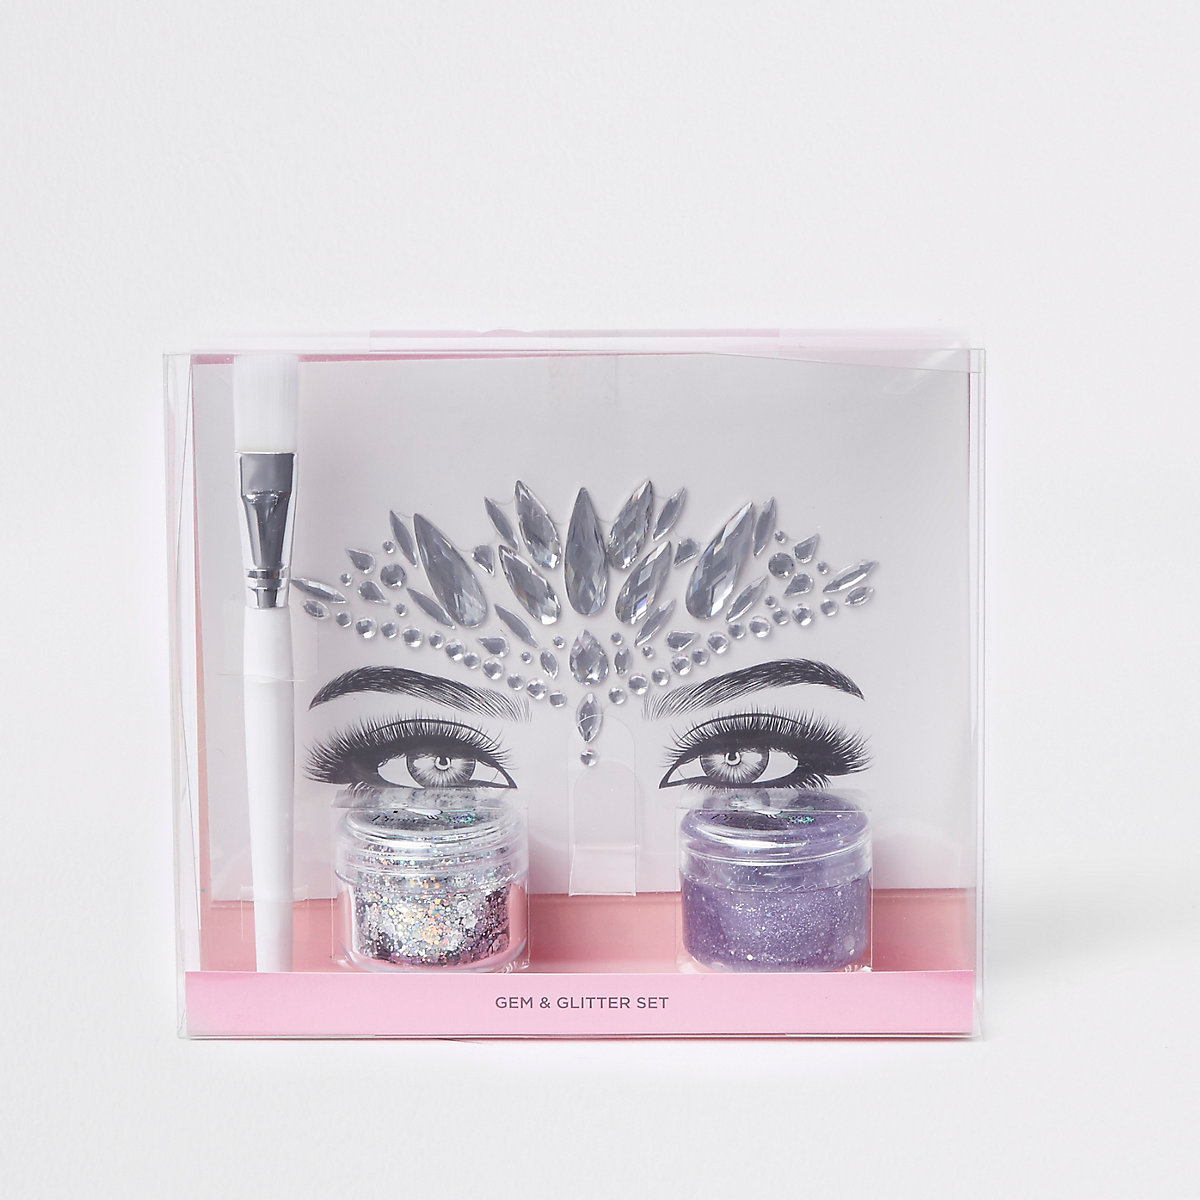 Prima silver gem and glitter makeup set